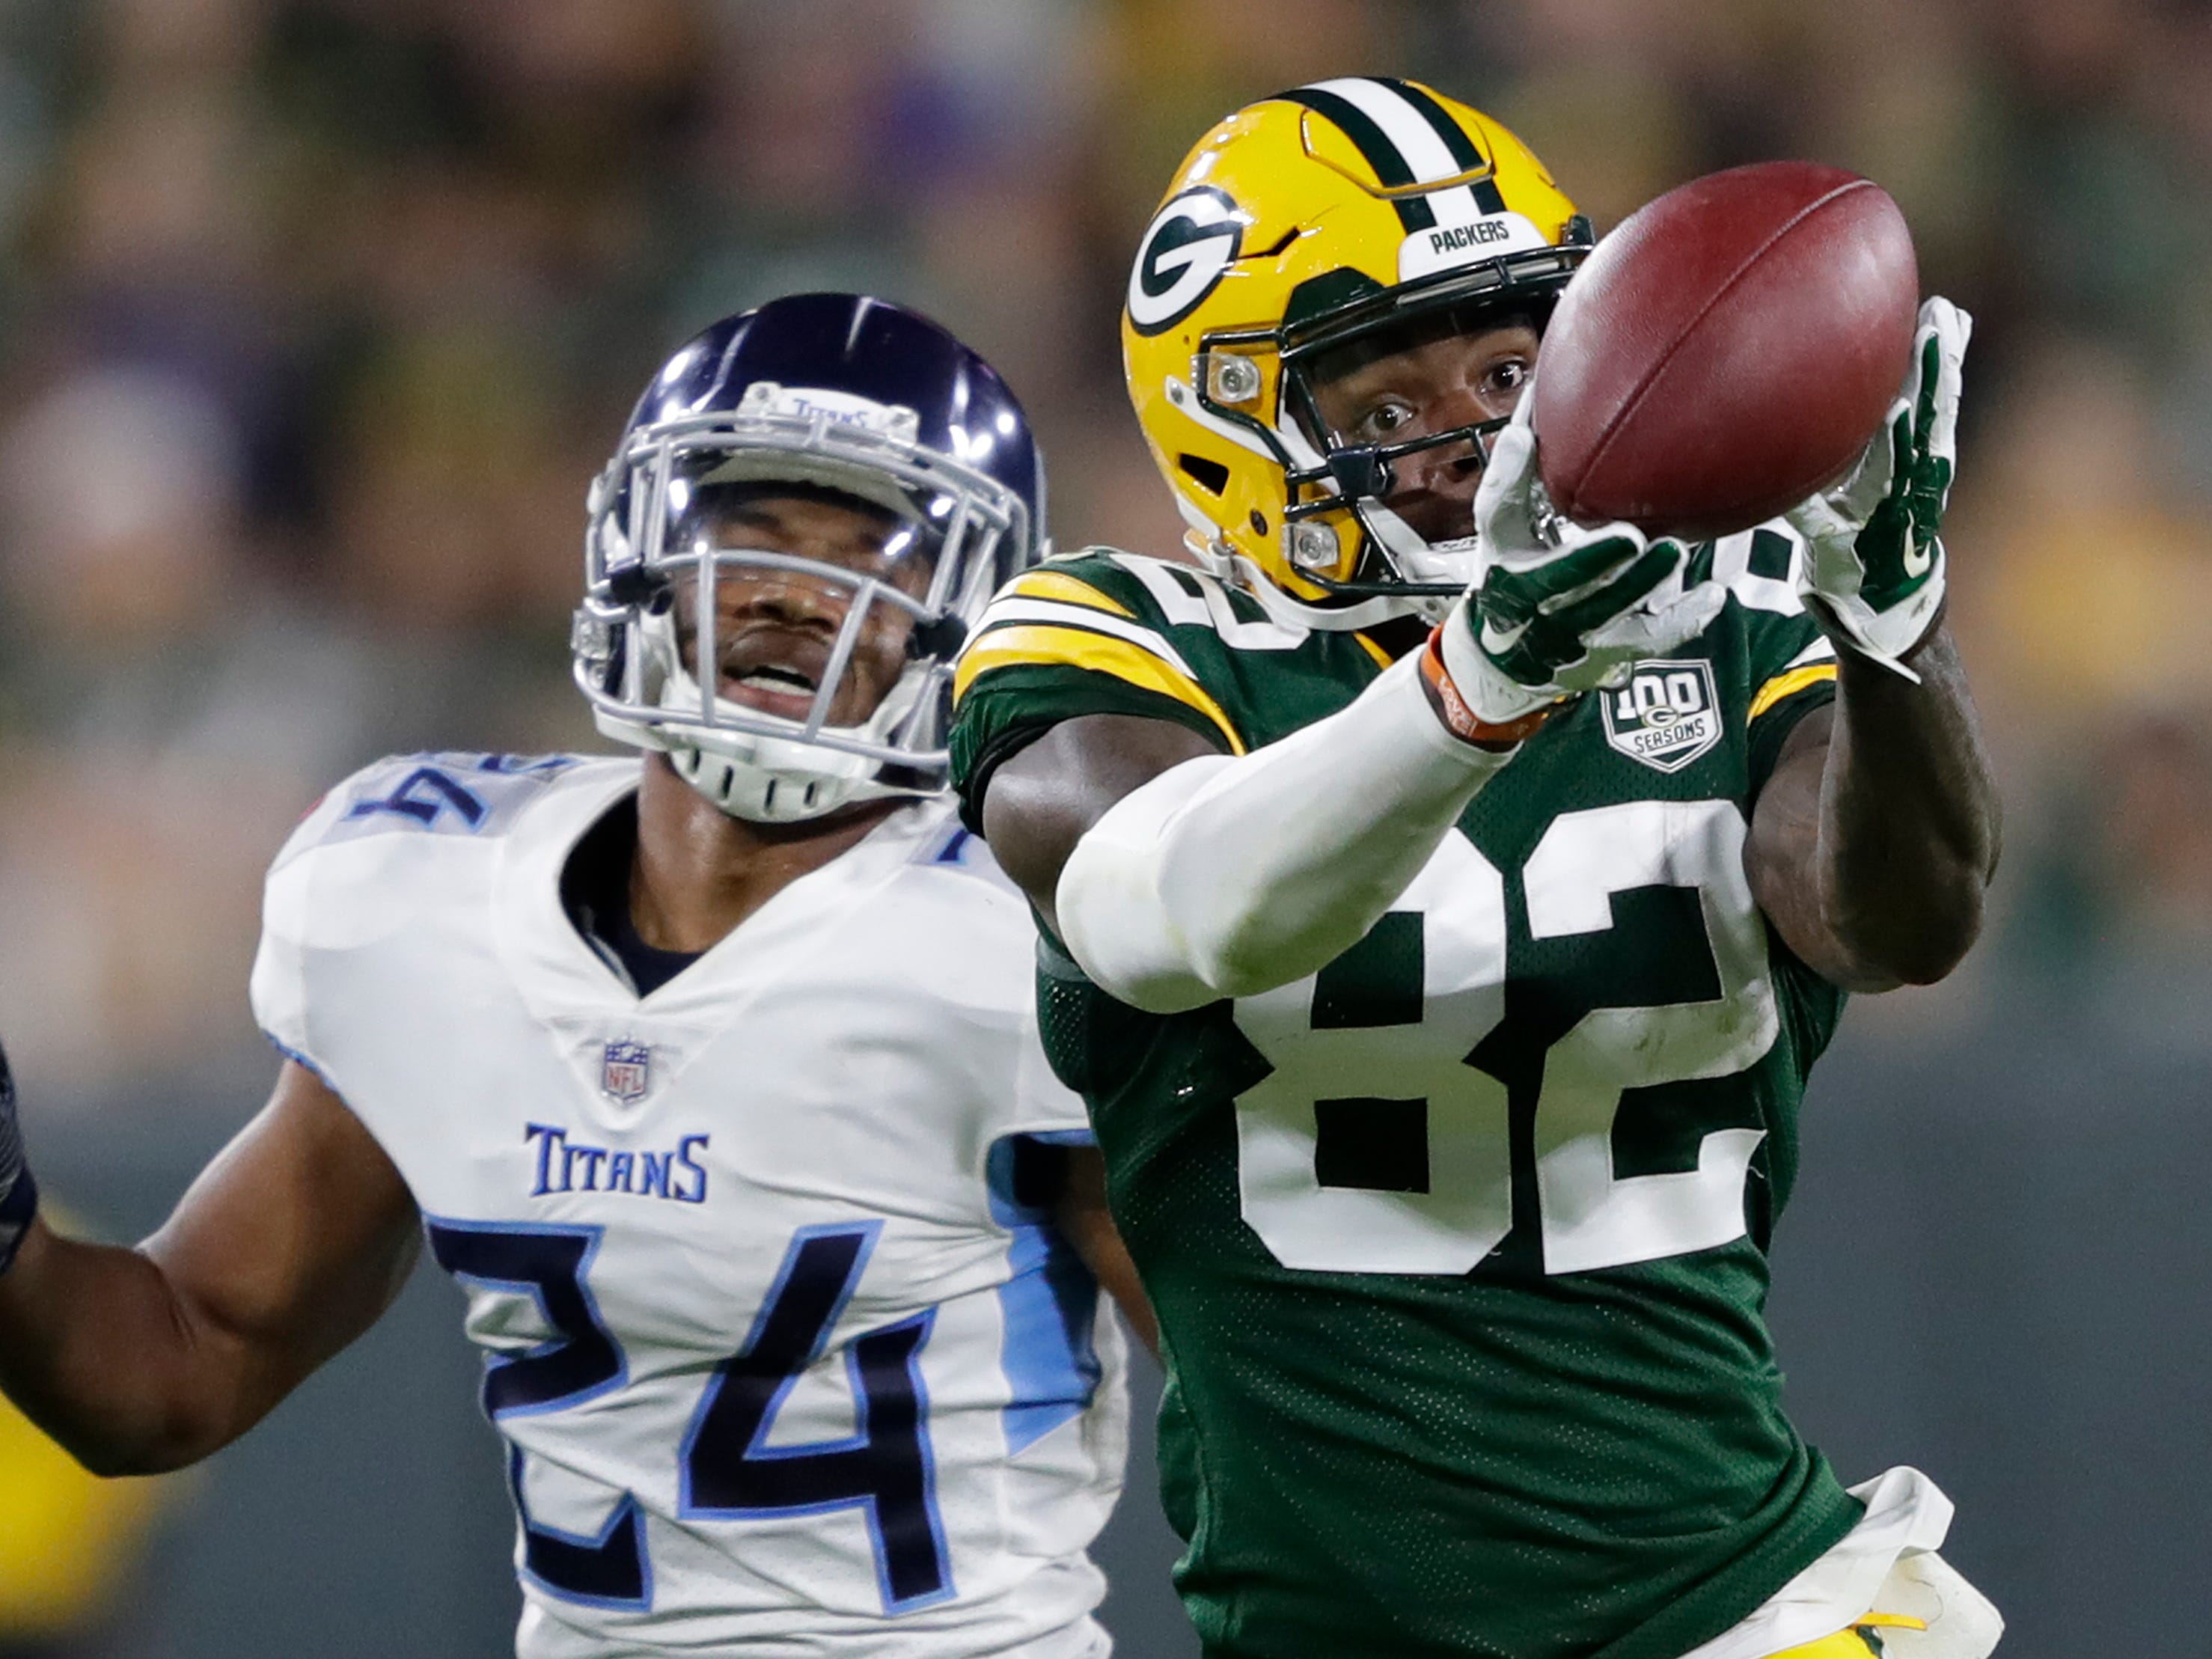 Green Bay Packers wide receiver J'Mon Moore (82) drops a pass against Tennessee Titans defensive back Kalan Reed (24) during their football game Thursday, August 9, 2018, at Lambeau Field in Green Bay, Wis.